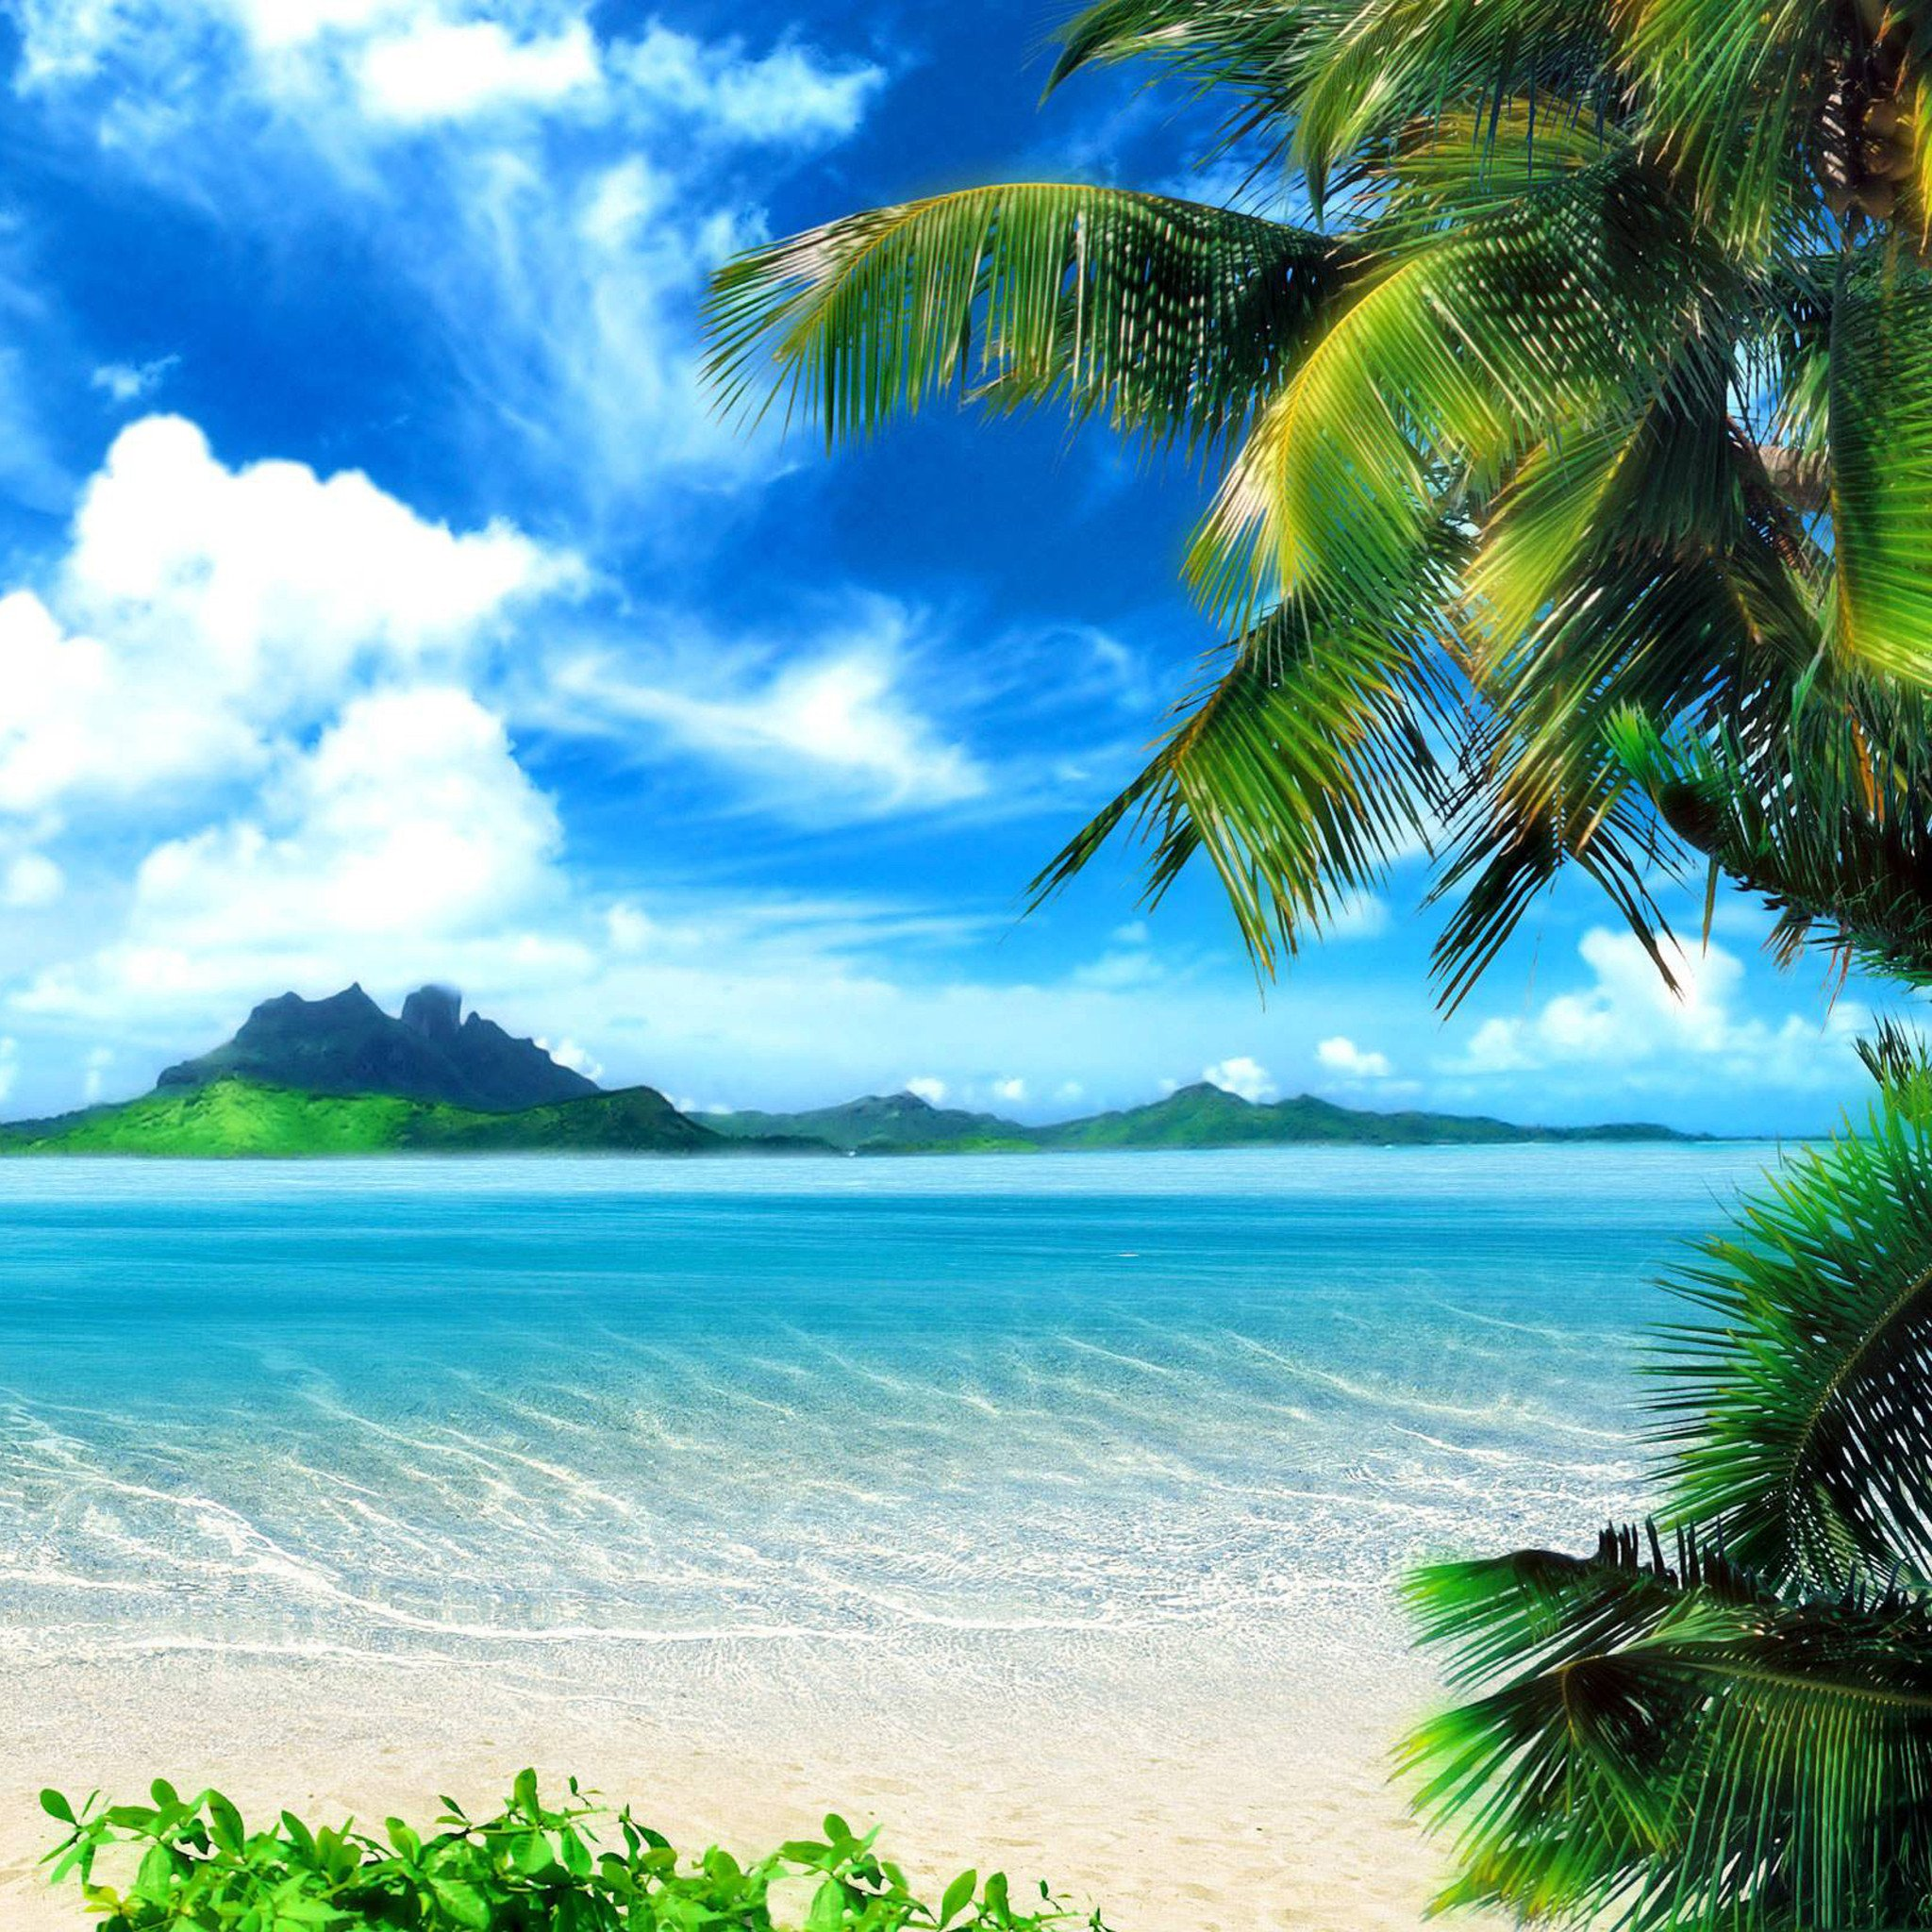 Beach With People Wallpaper Beach with people wallpaper 2048x2048